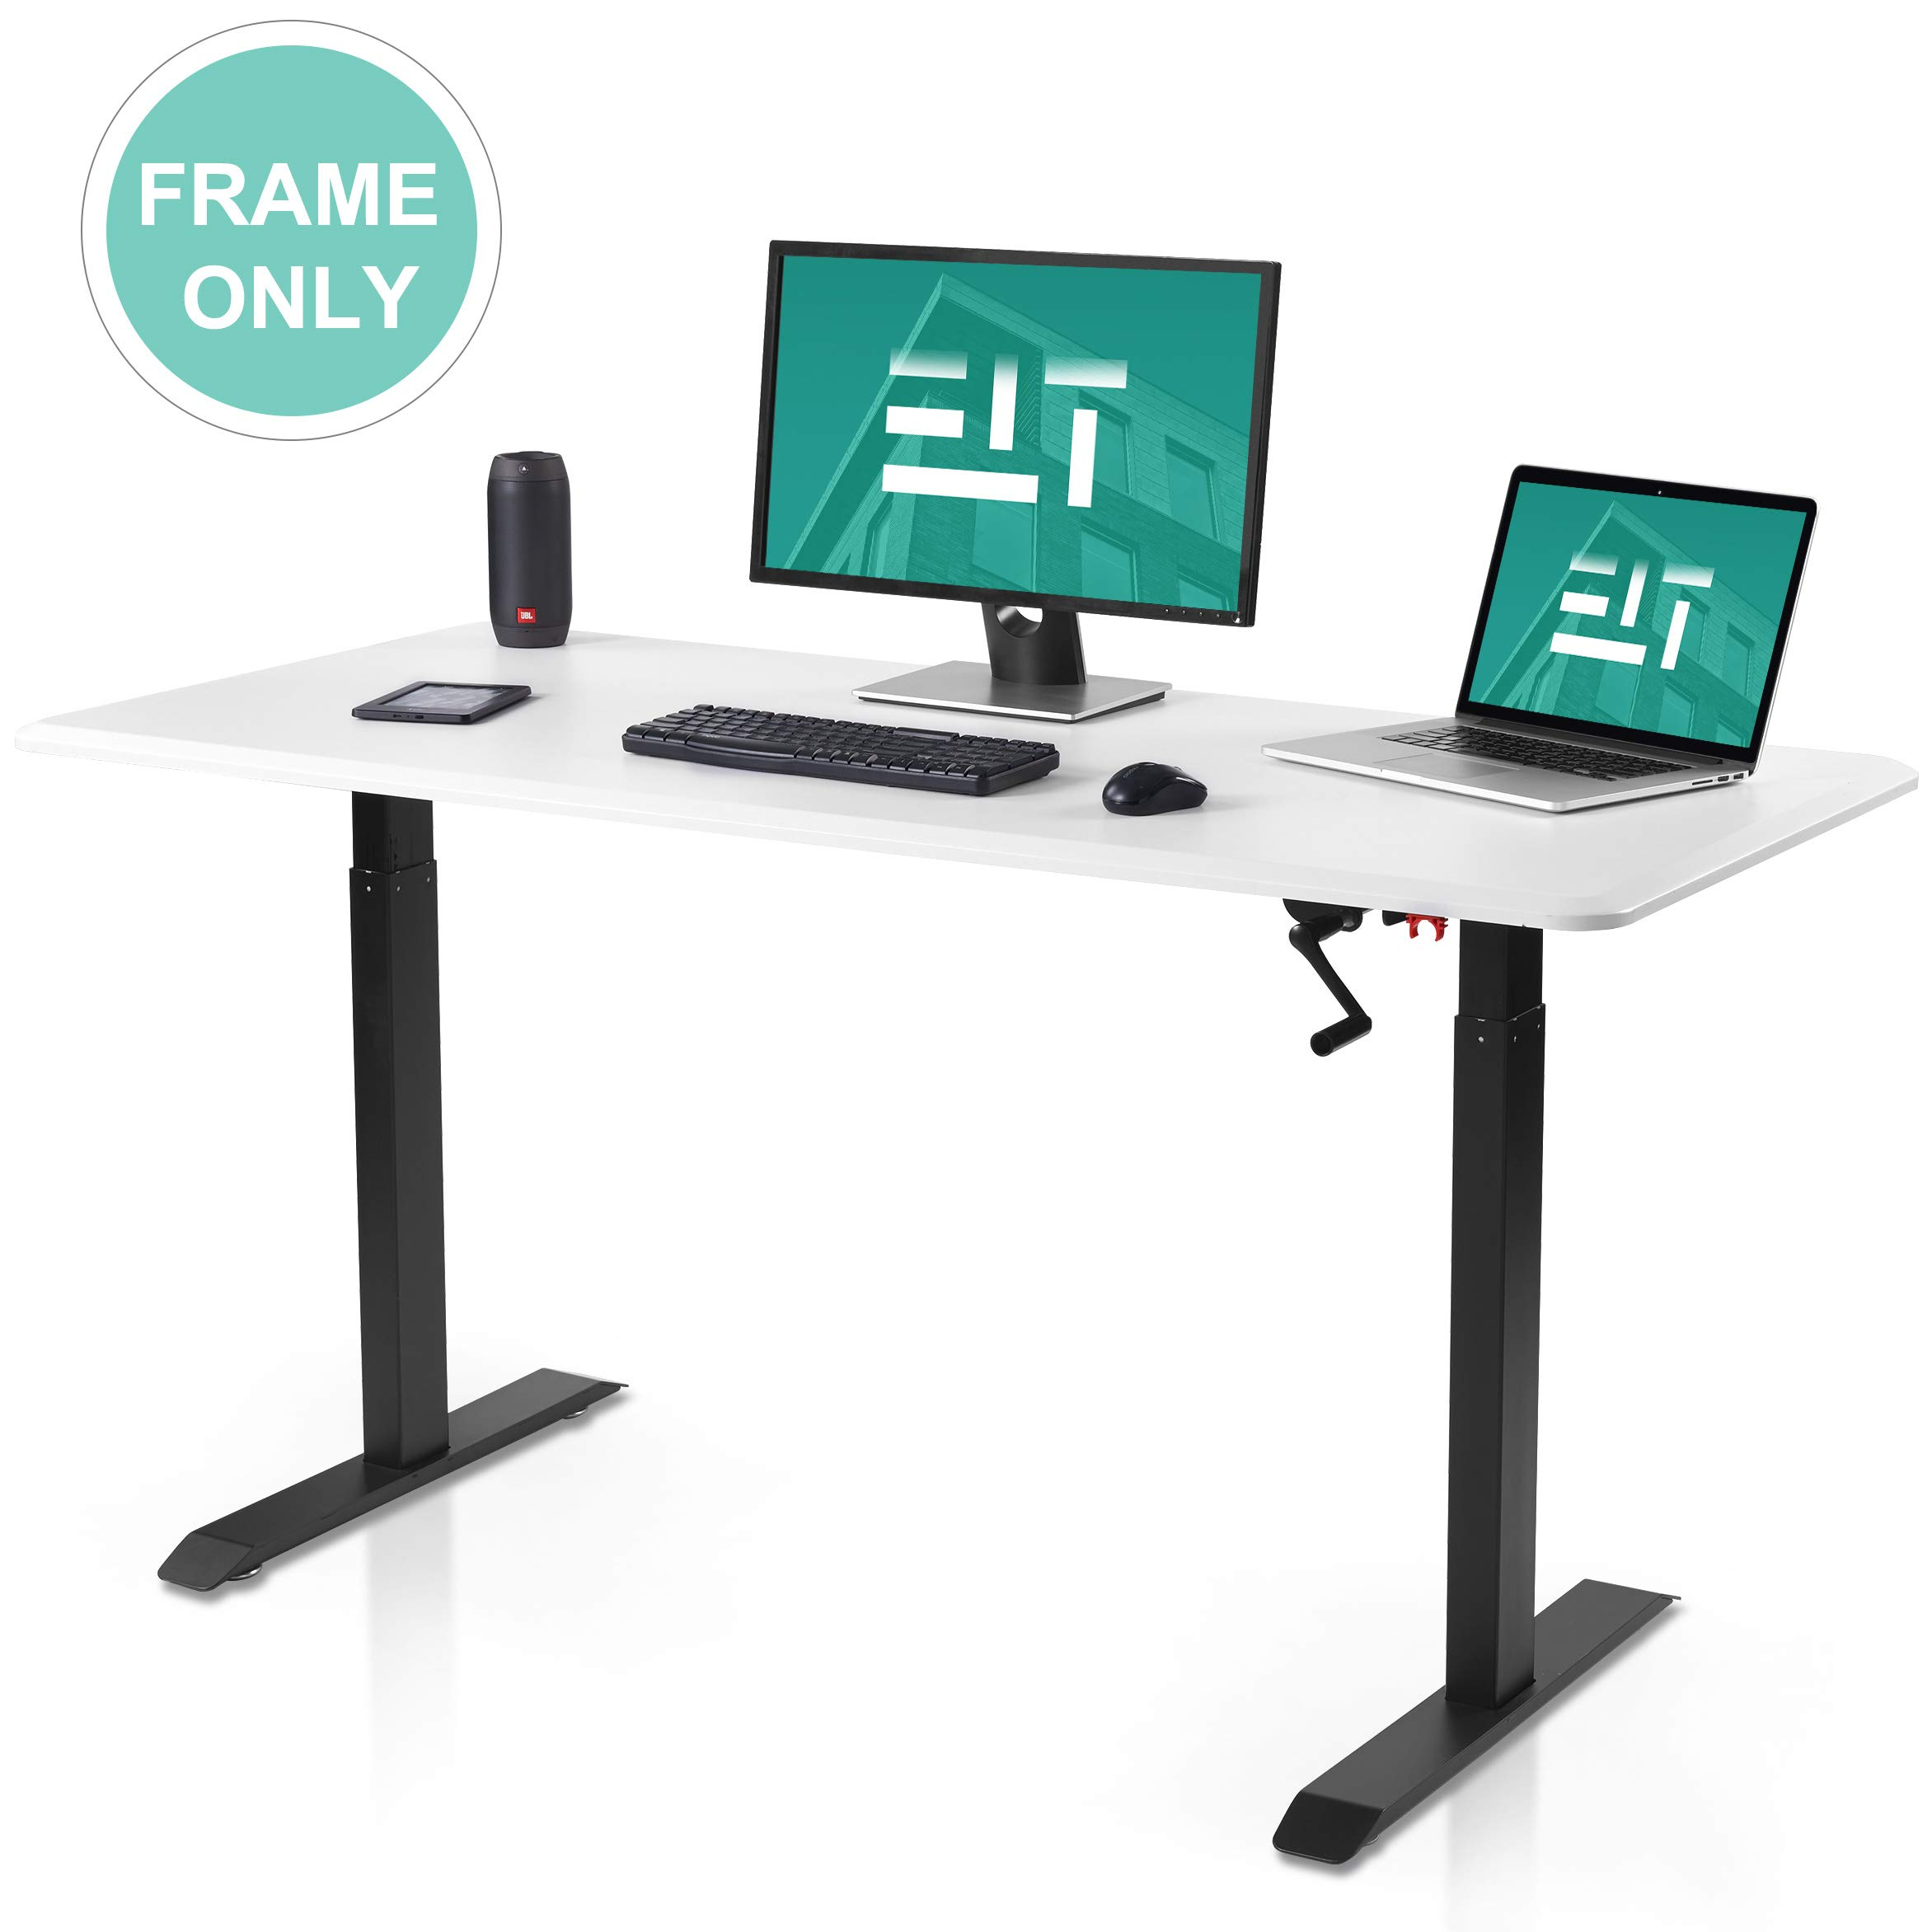 EleTab Manual Stand up Desk Frame - Height Adjustable Sit Stand Desk with Crank System Standing Workstation